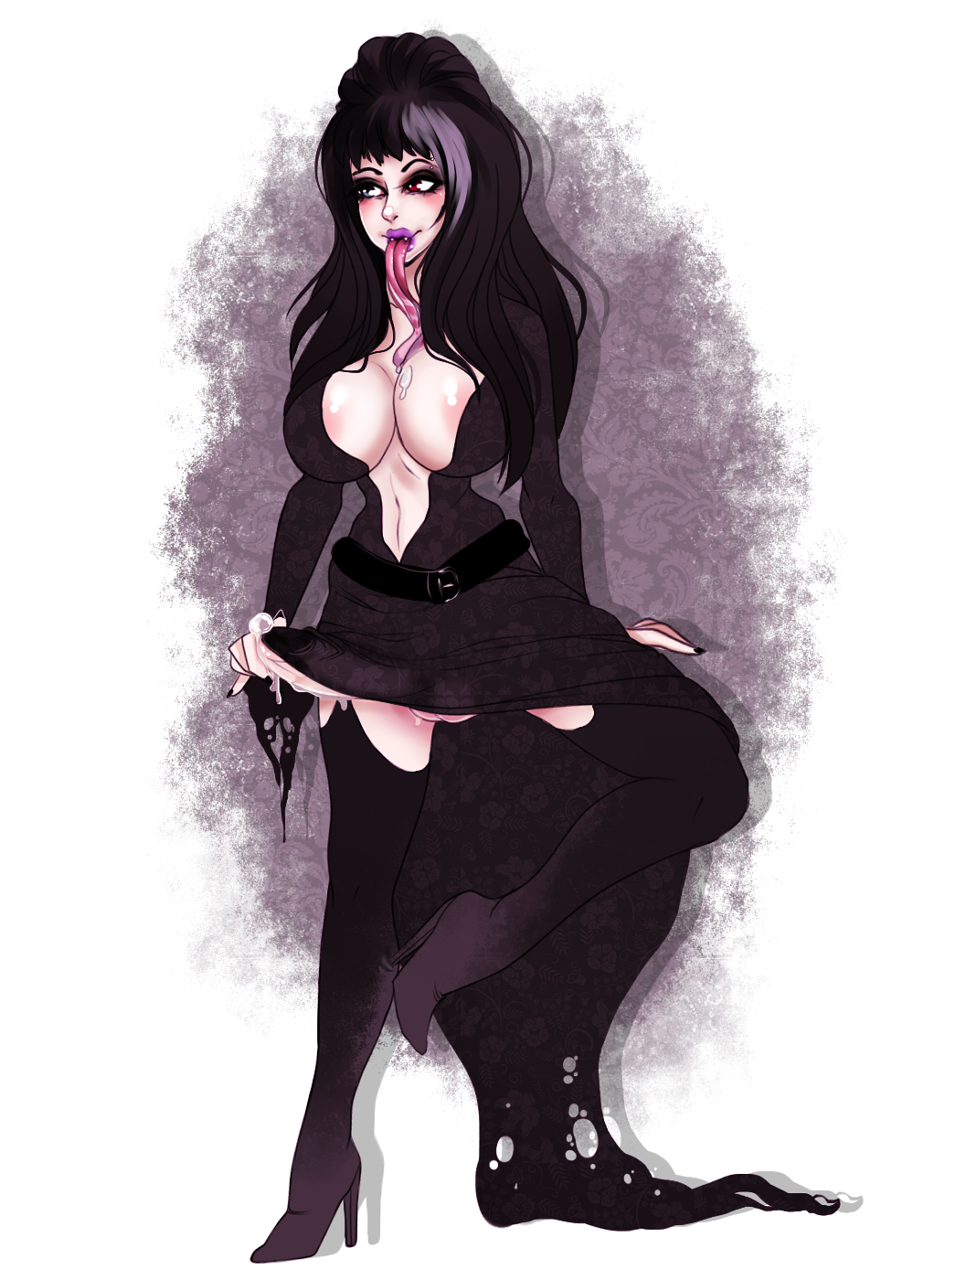 the of mistress elvira tits dark French maid beauty and the beast